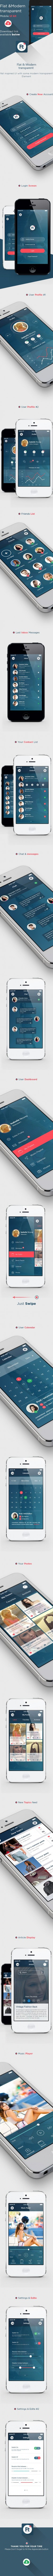 Flat Mobile UI/UX Concept +download | Web Design | Pinterest